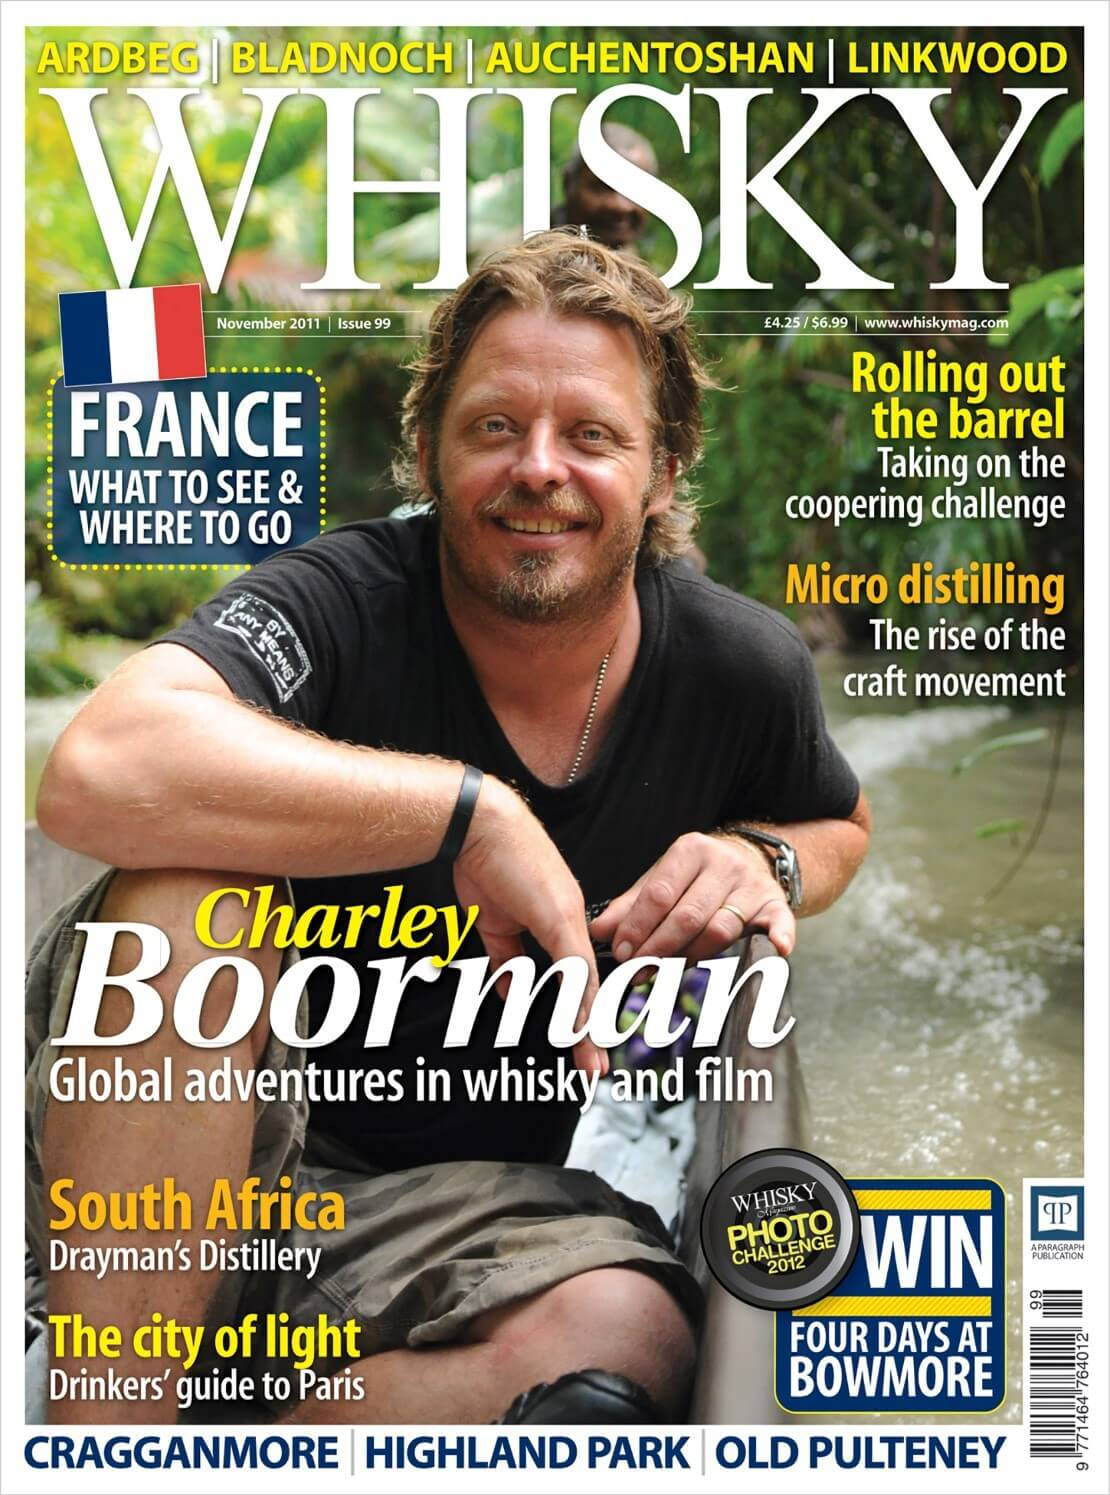 Charley Boorman Drayman's Distillery Drinker's guide to Paris Micro Distilling